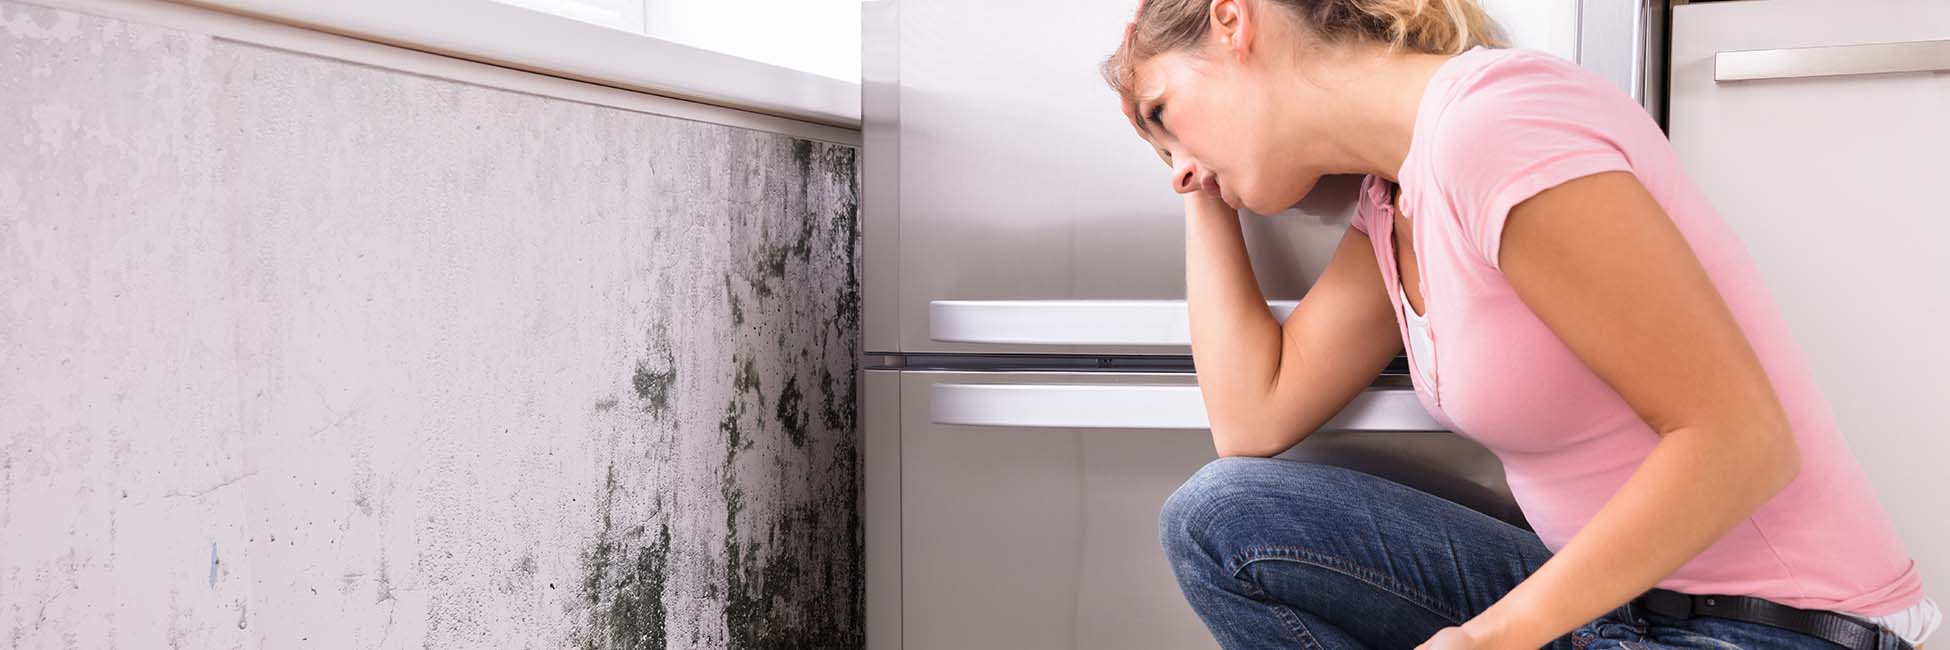 Mold Damage Insurance Claims Adjuster in Florida